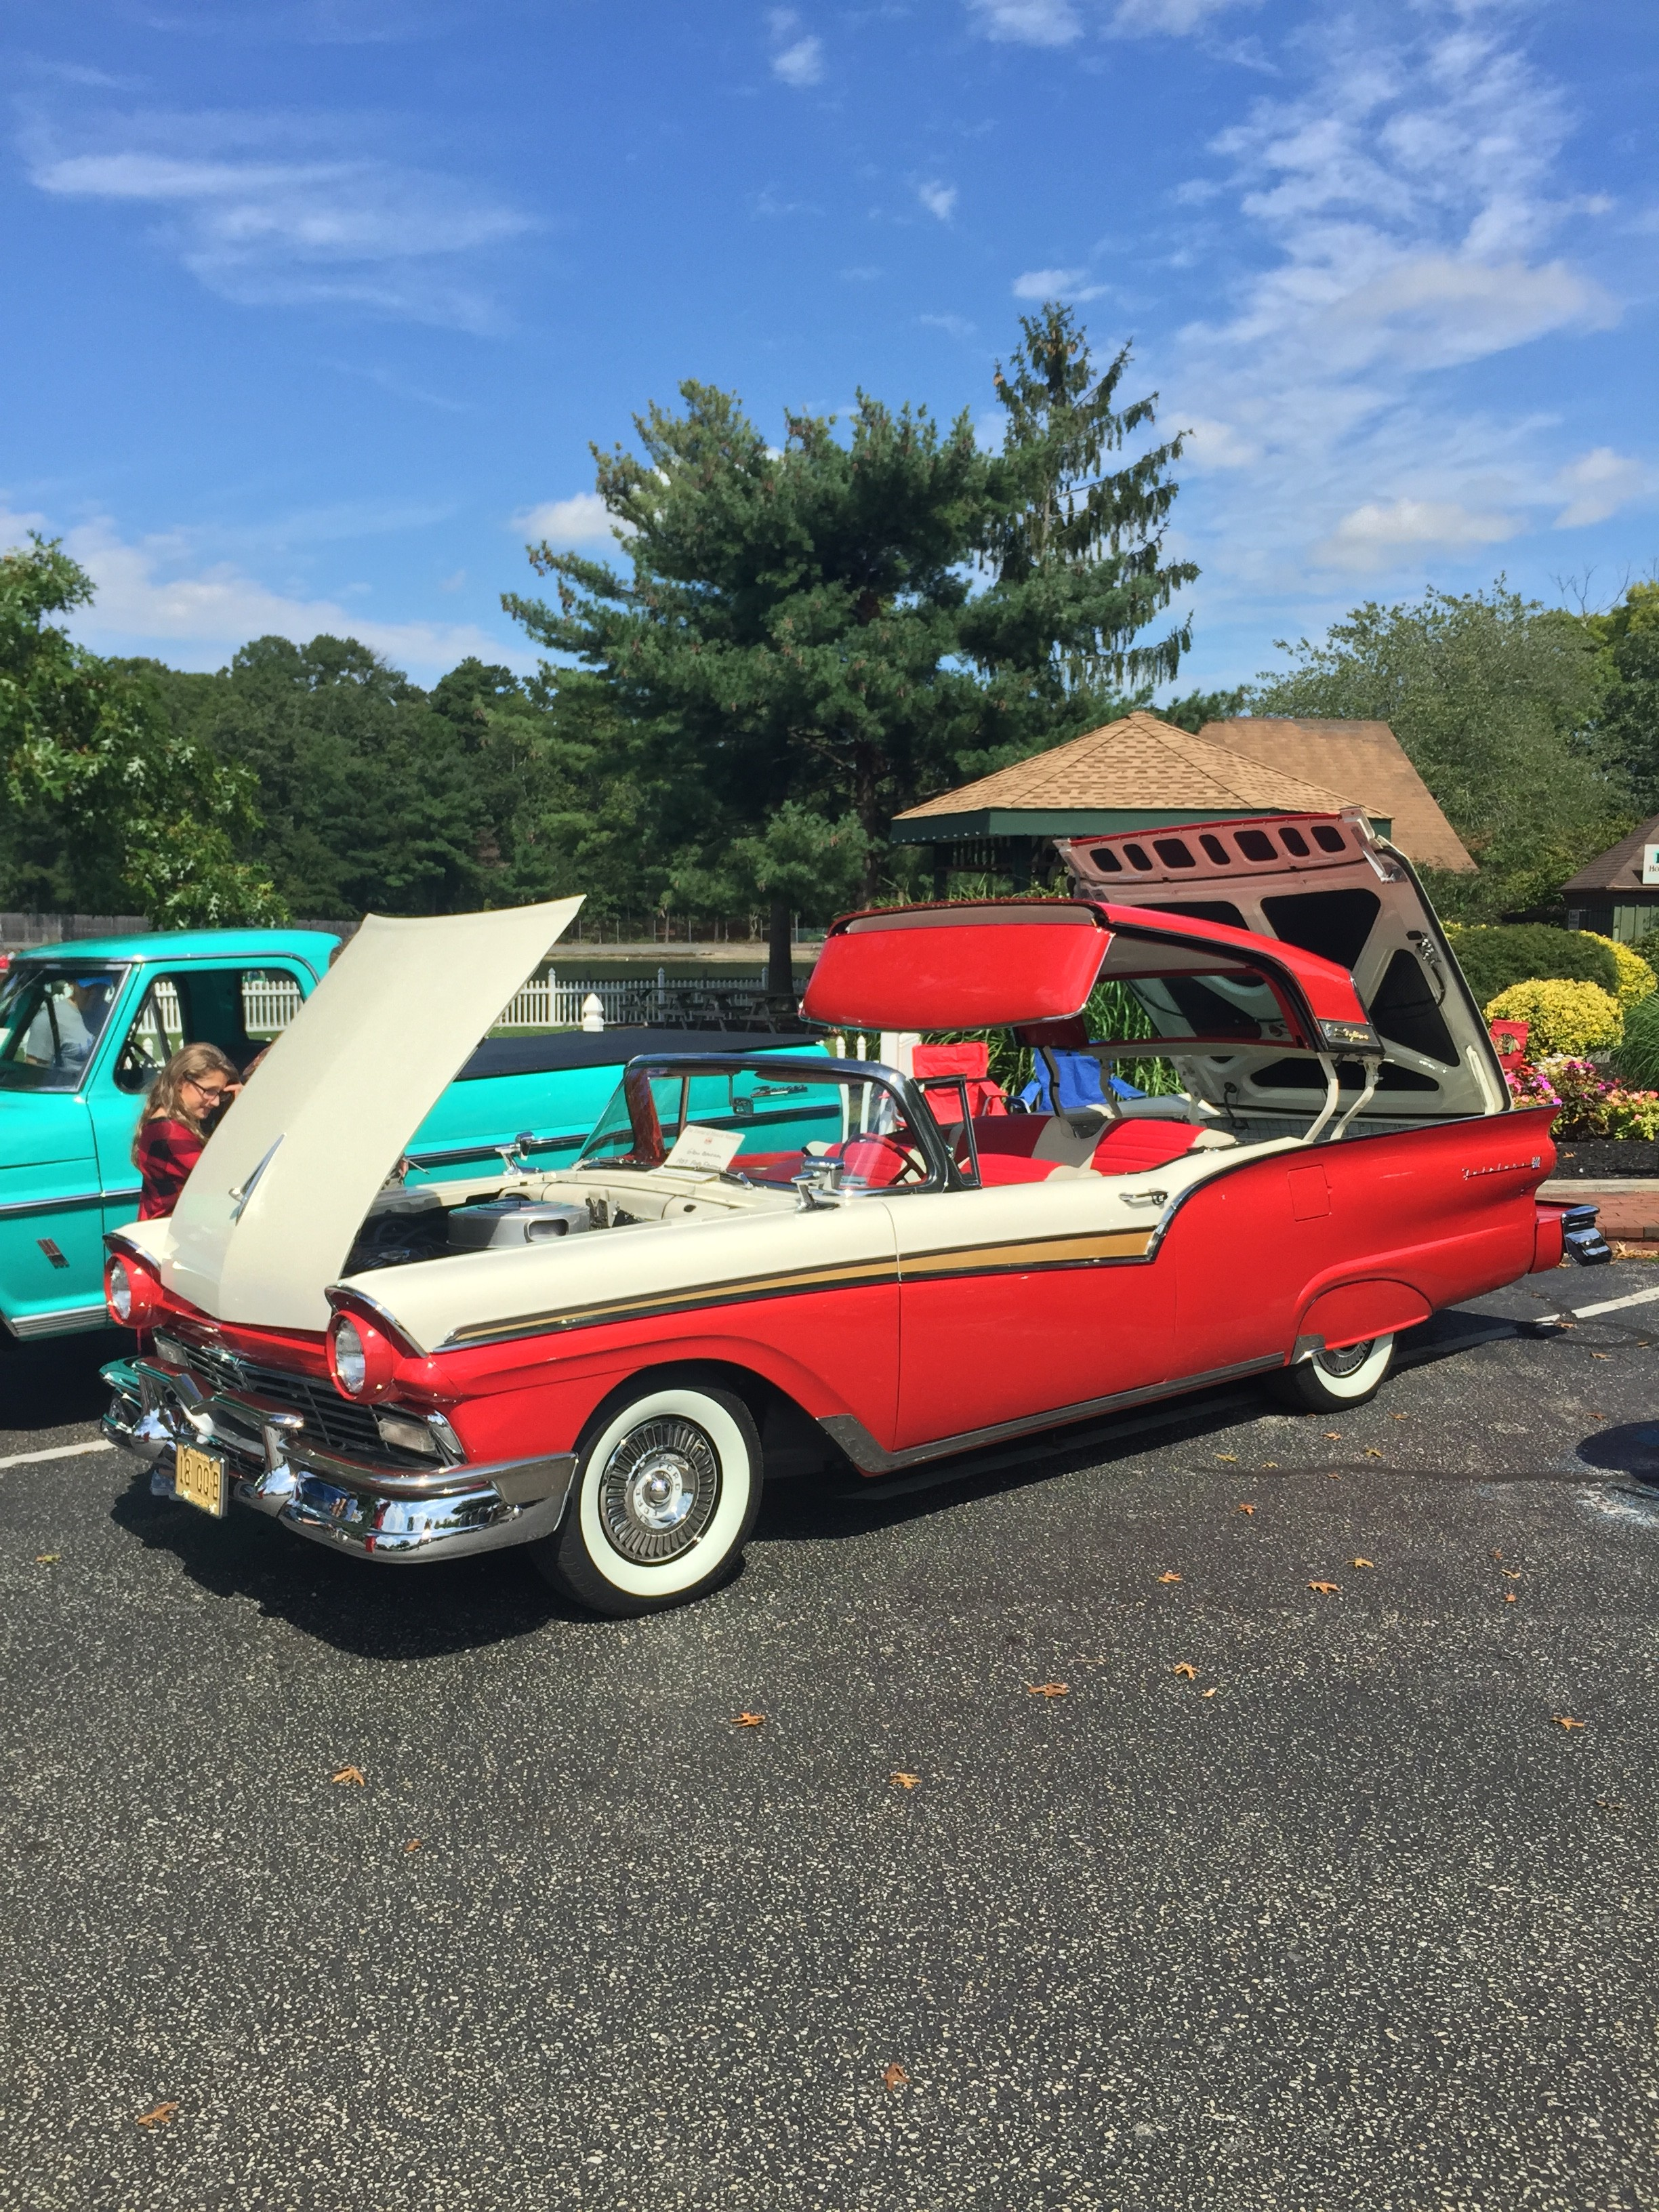 2018 SHORES AT WESLEY AUTOMOBILE SHOW